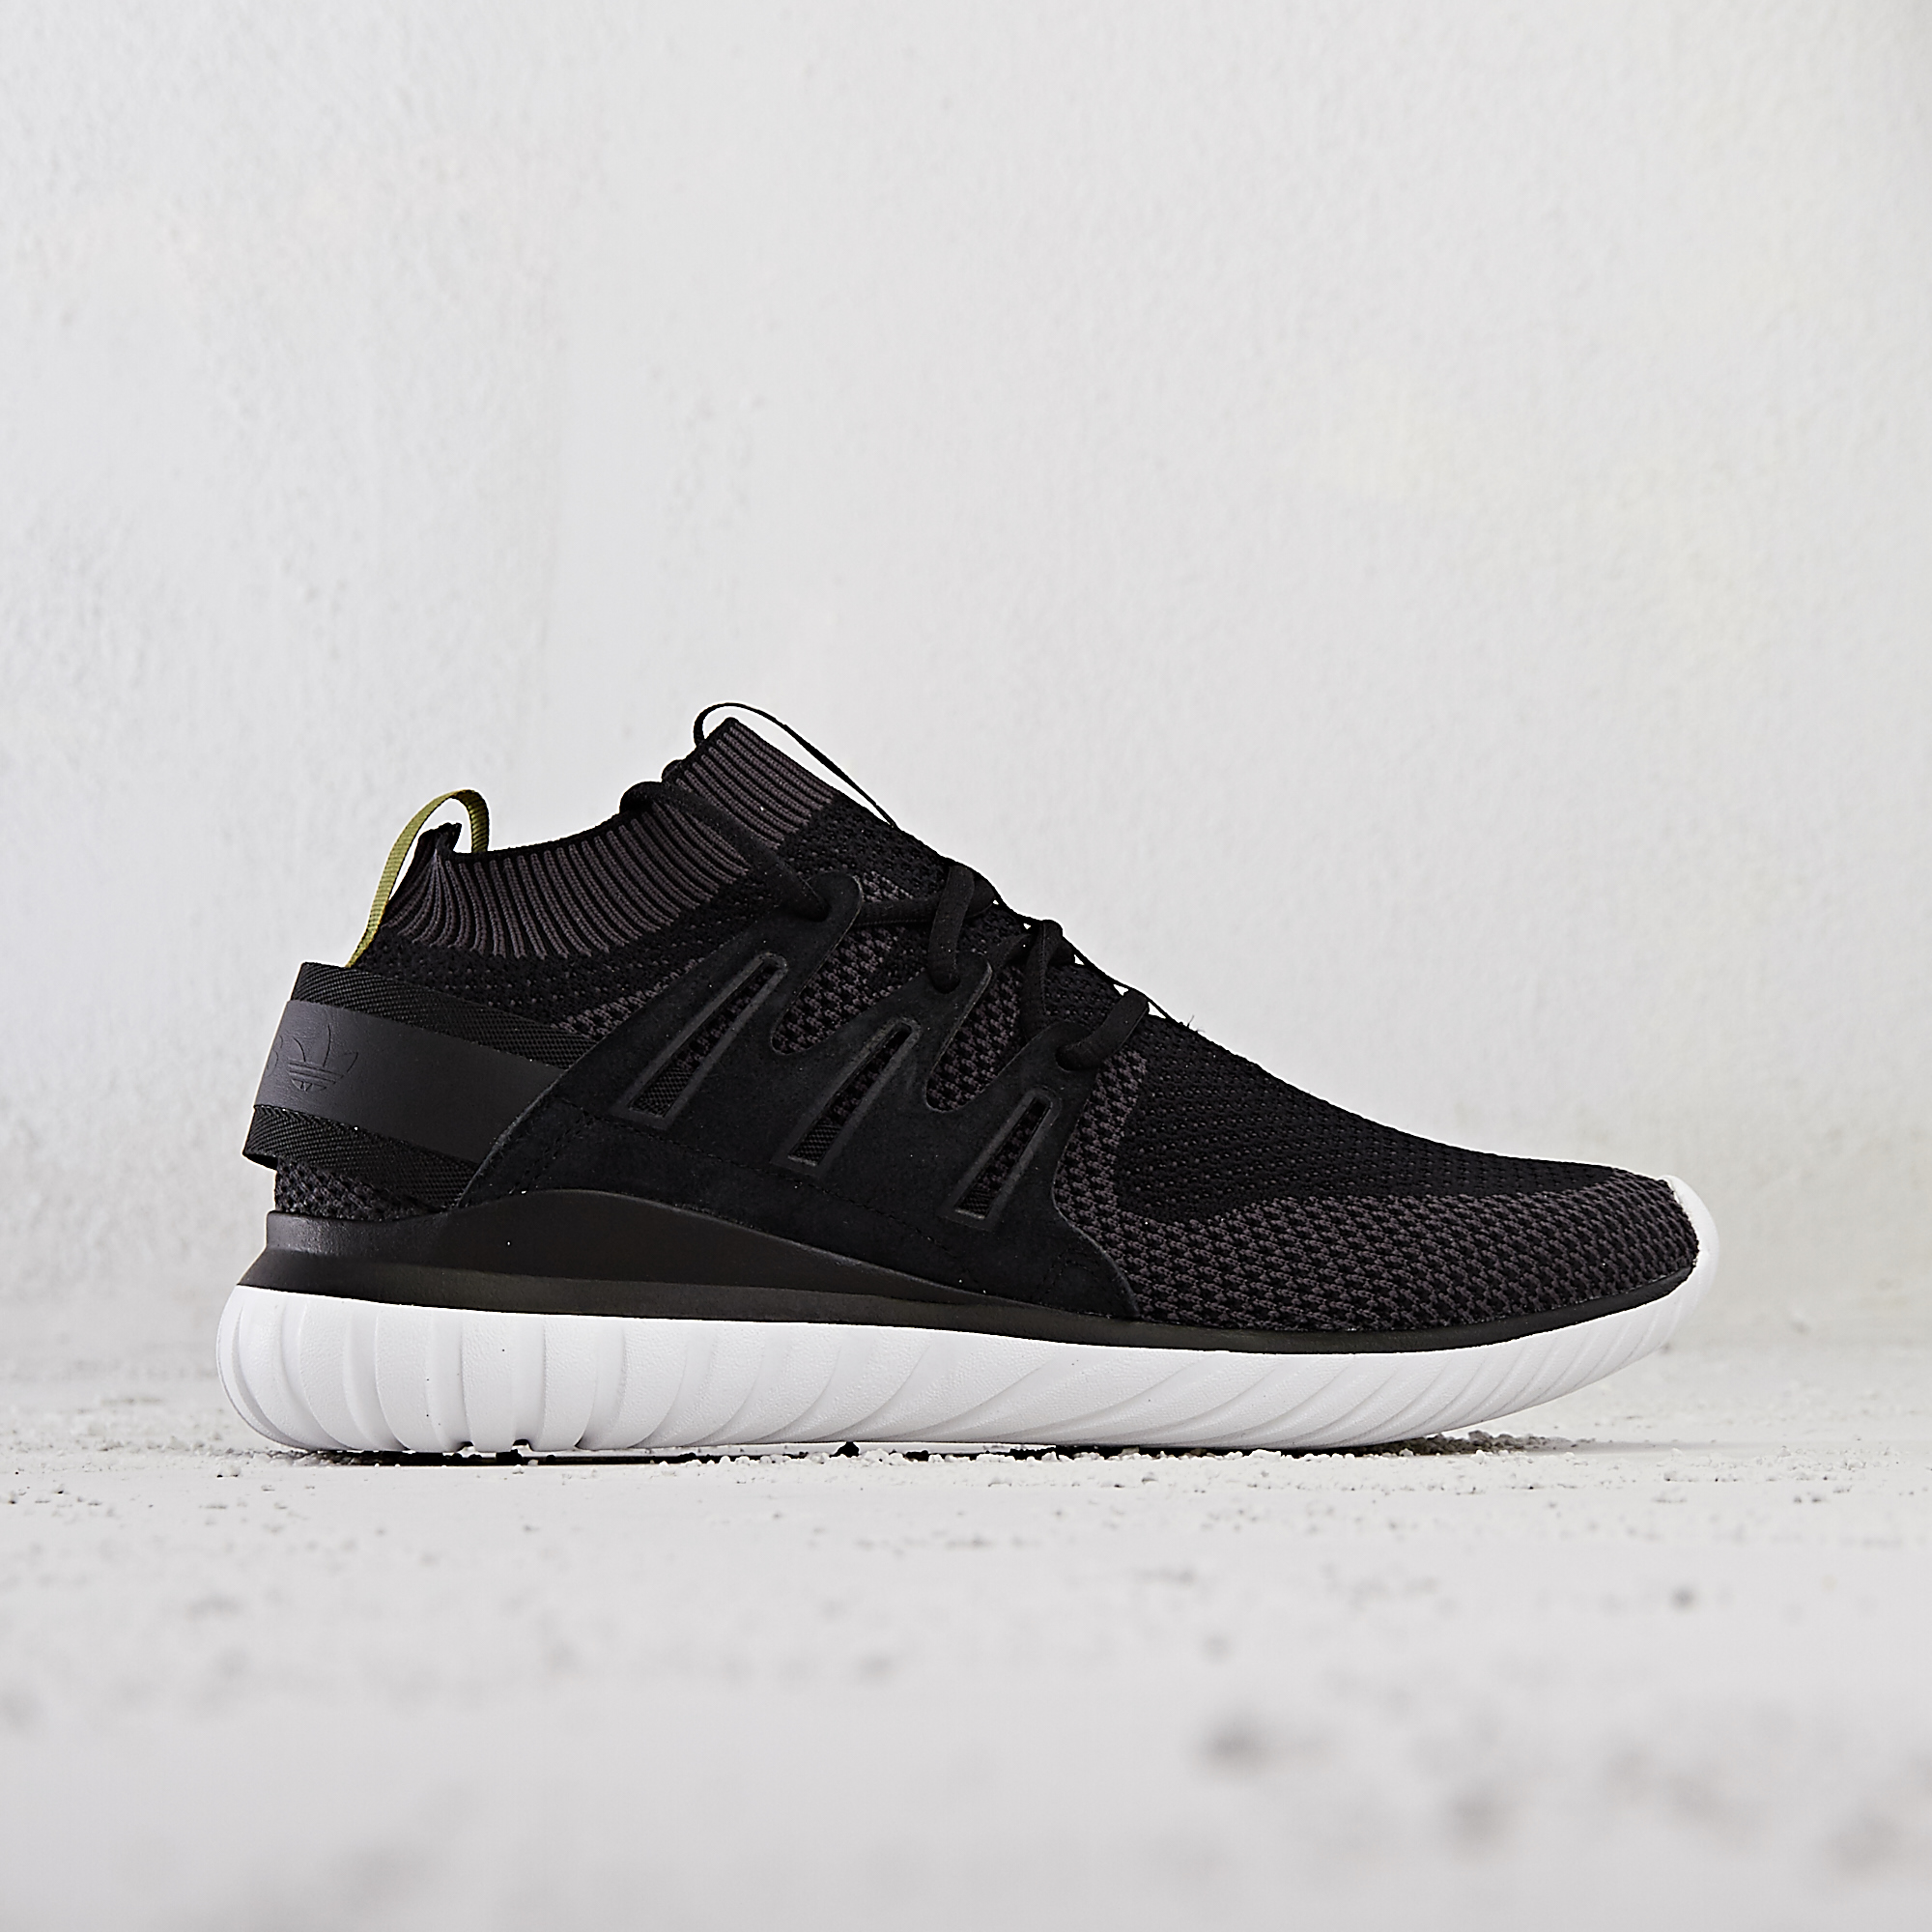 reputable site 5e582 e5209 TUBULAR NOVA PK